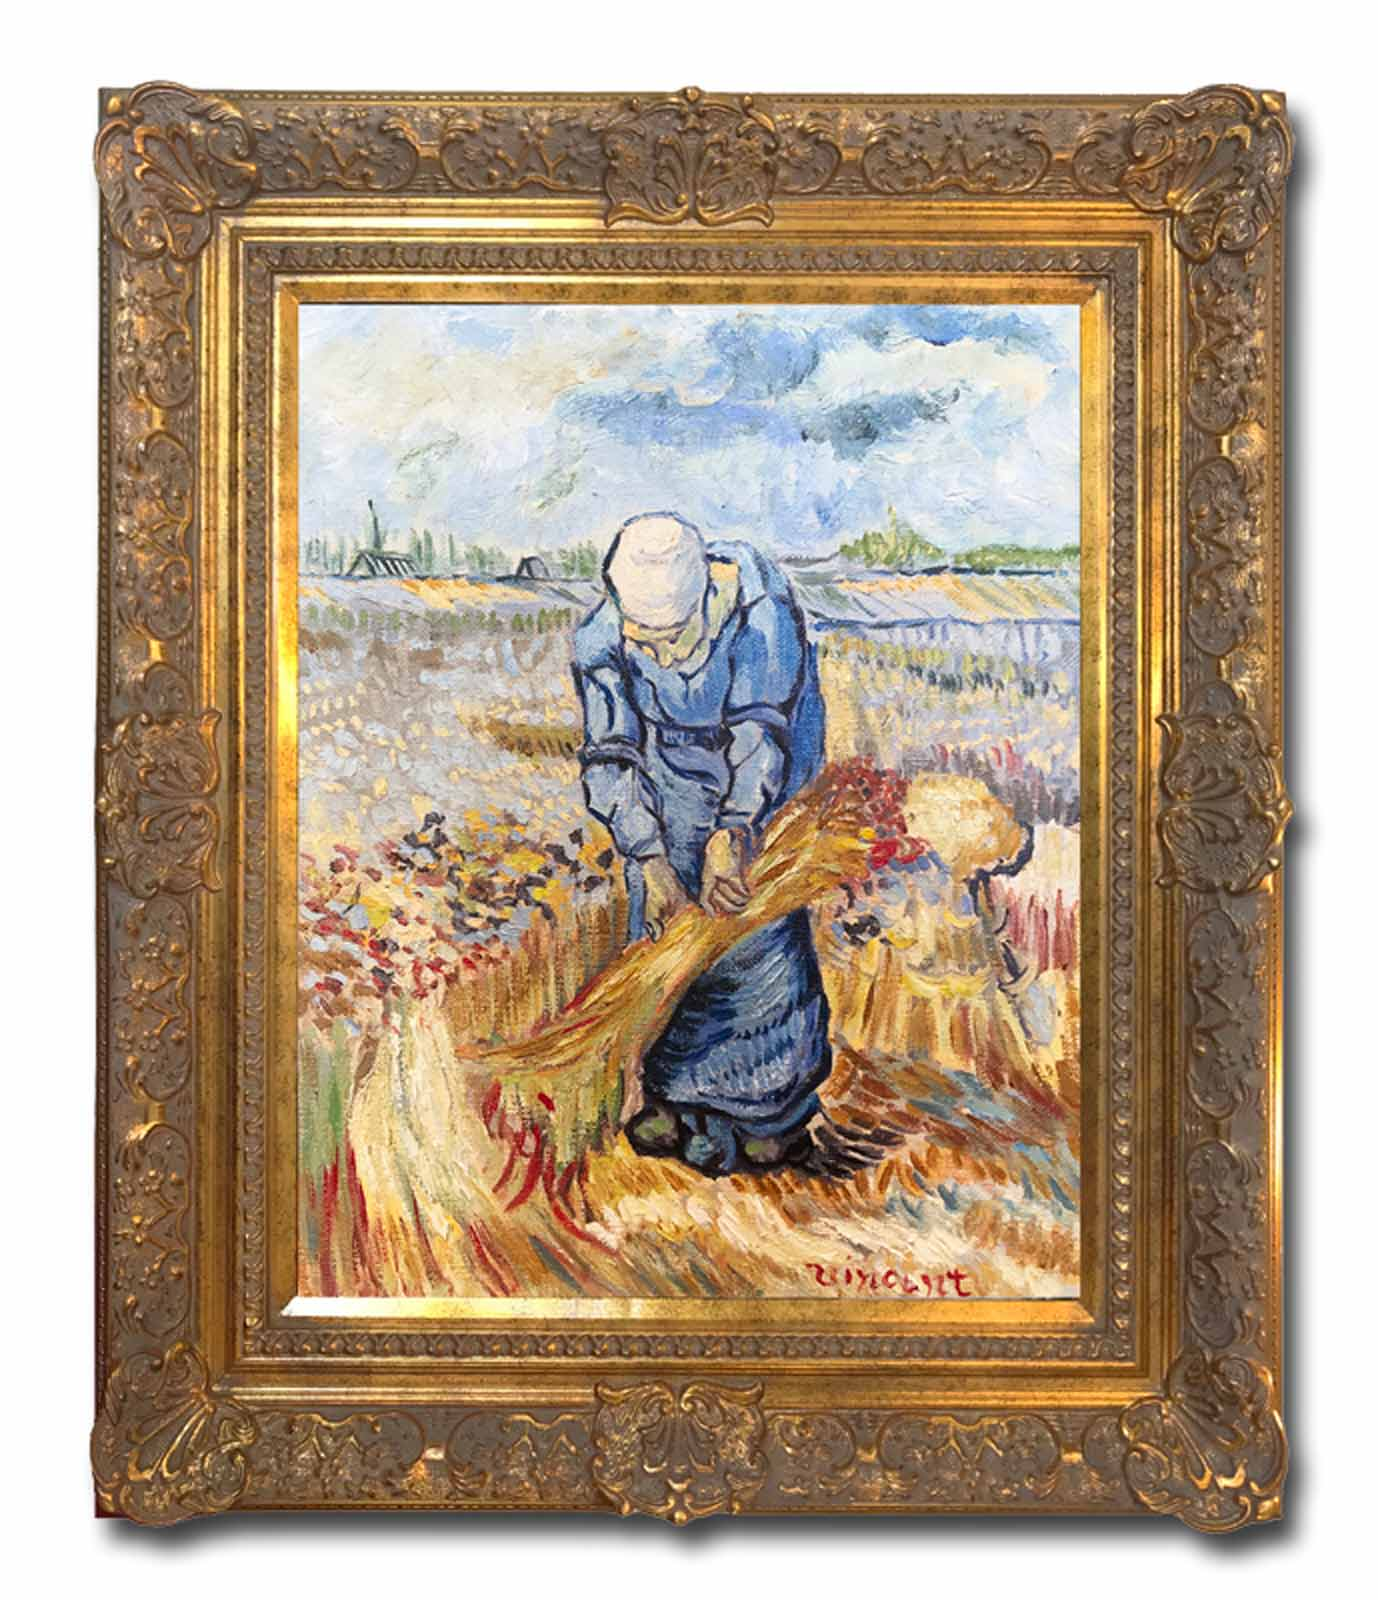 Peasant Woman Binding Sheaths after Vincent Van Gogh